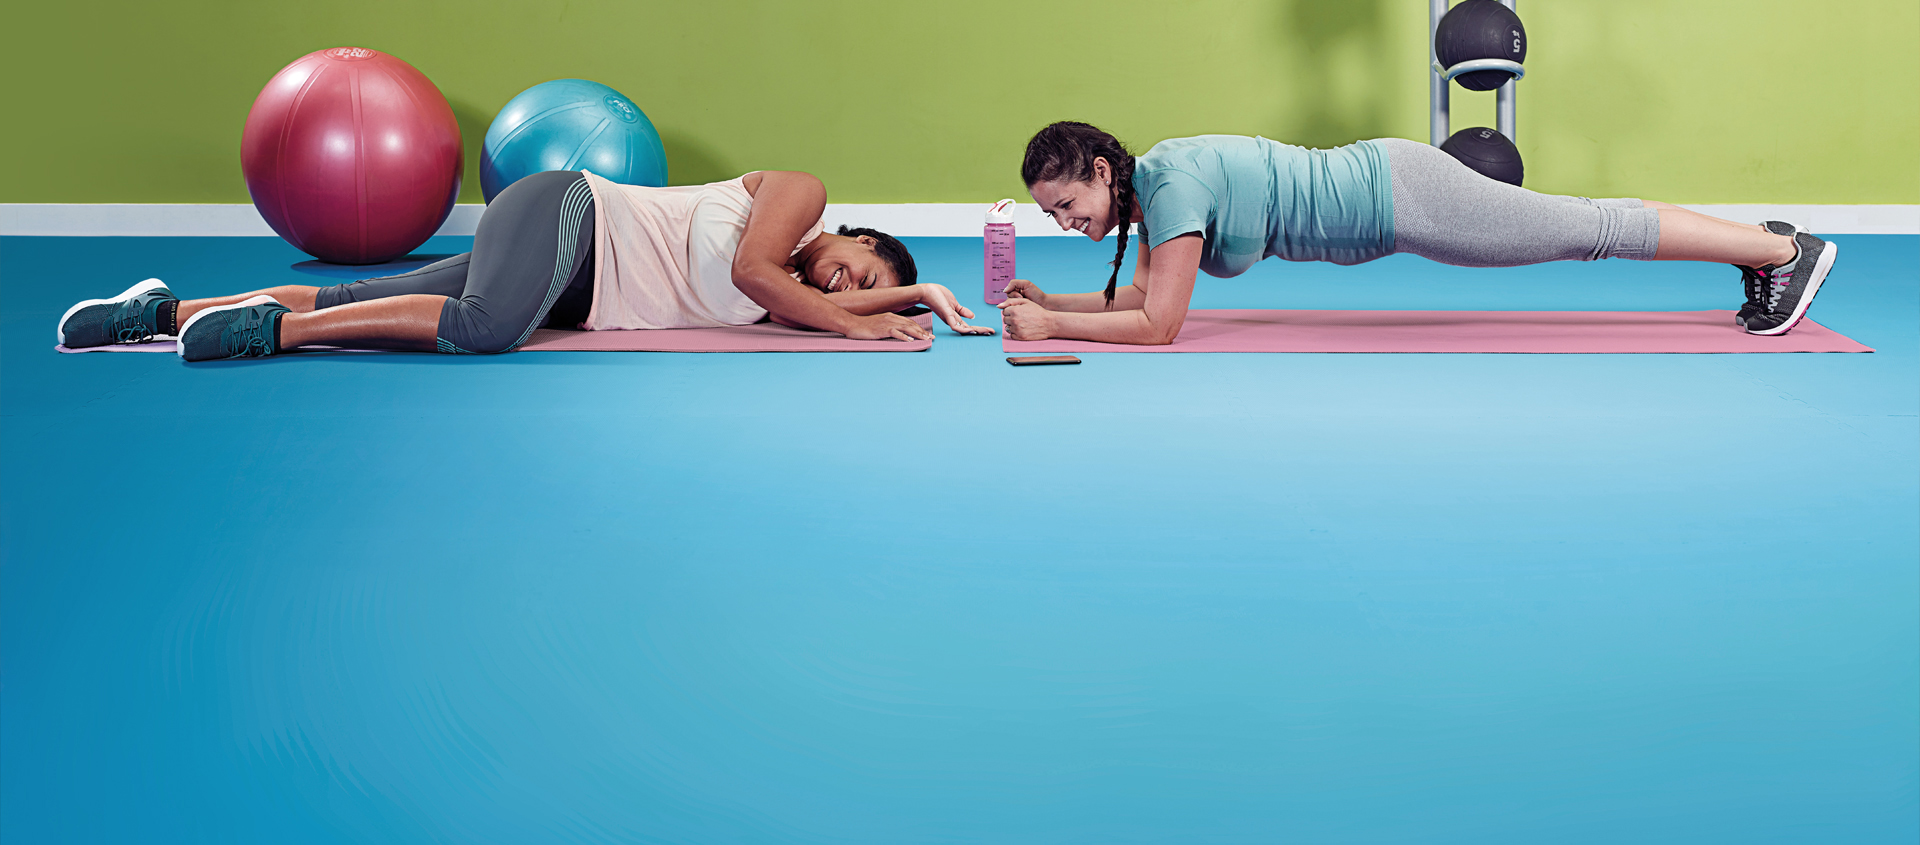 Brand Communications for The Gym Group